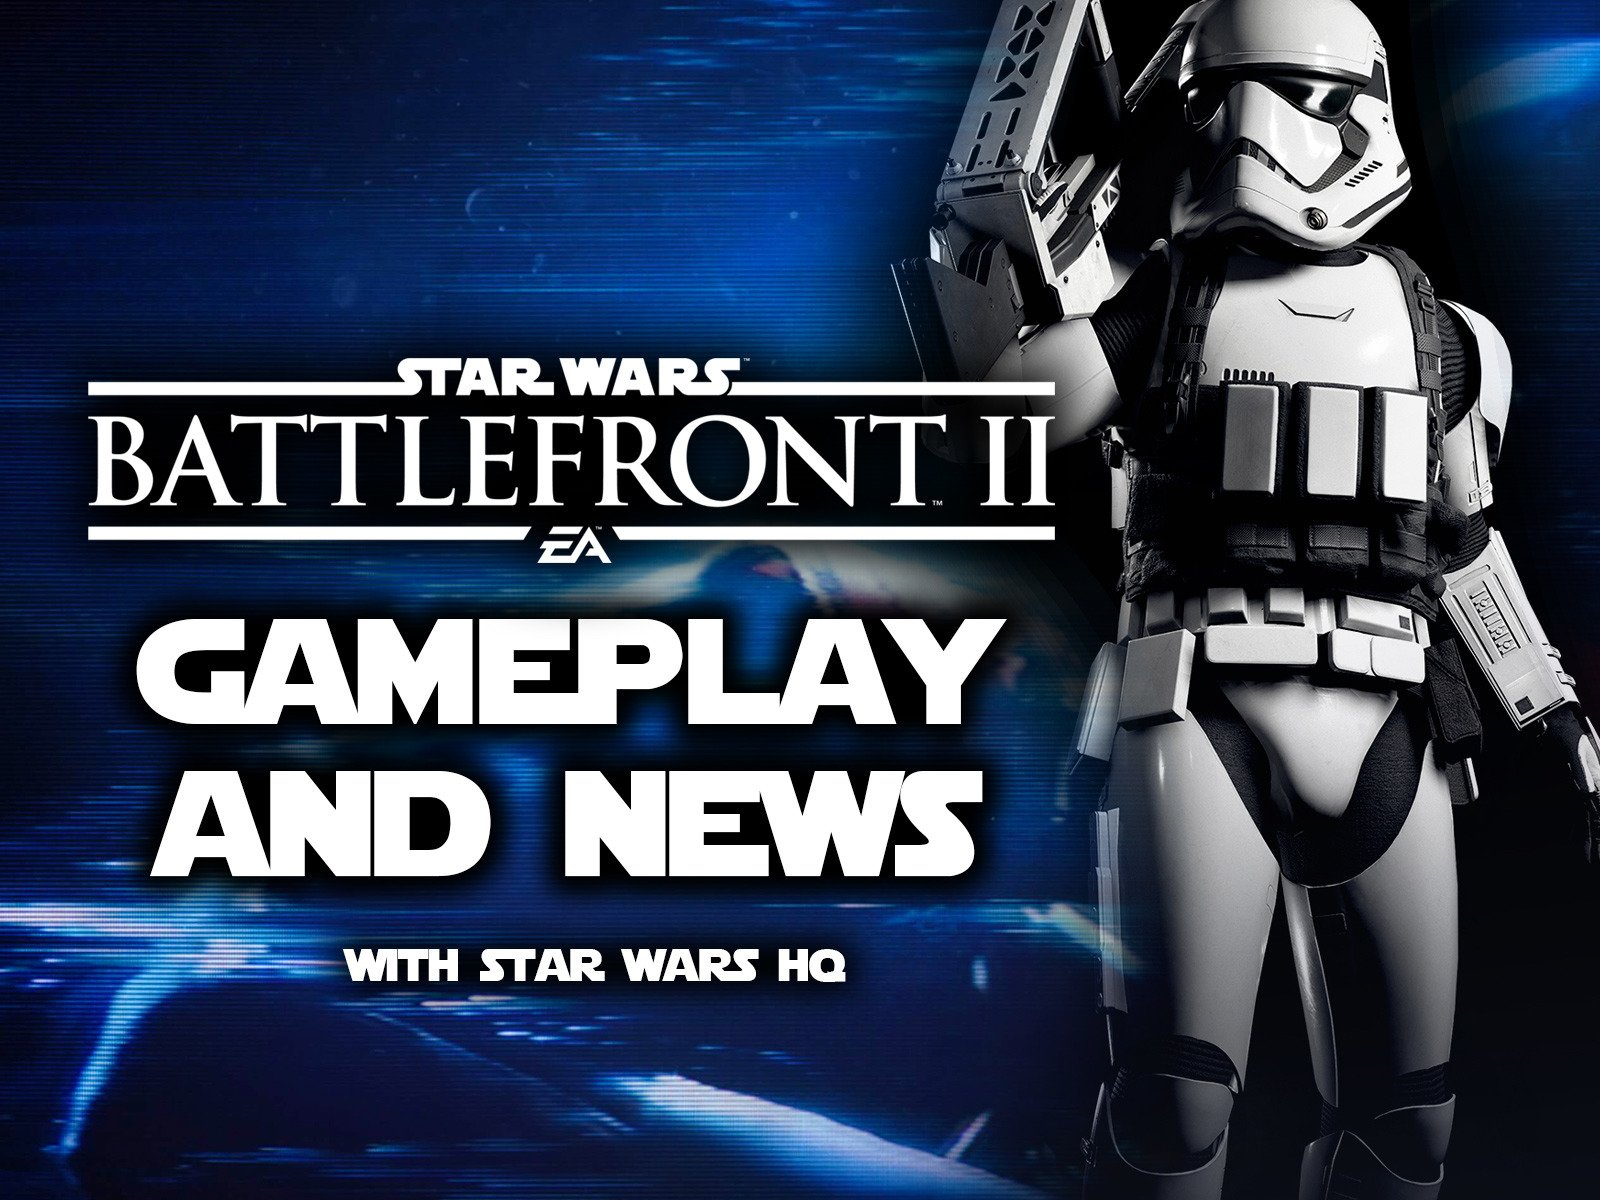 Star Wars Battlefront 2 Gameplay and News with Star Wars HQ on Amazon Prime Video UK